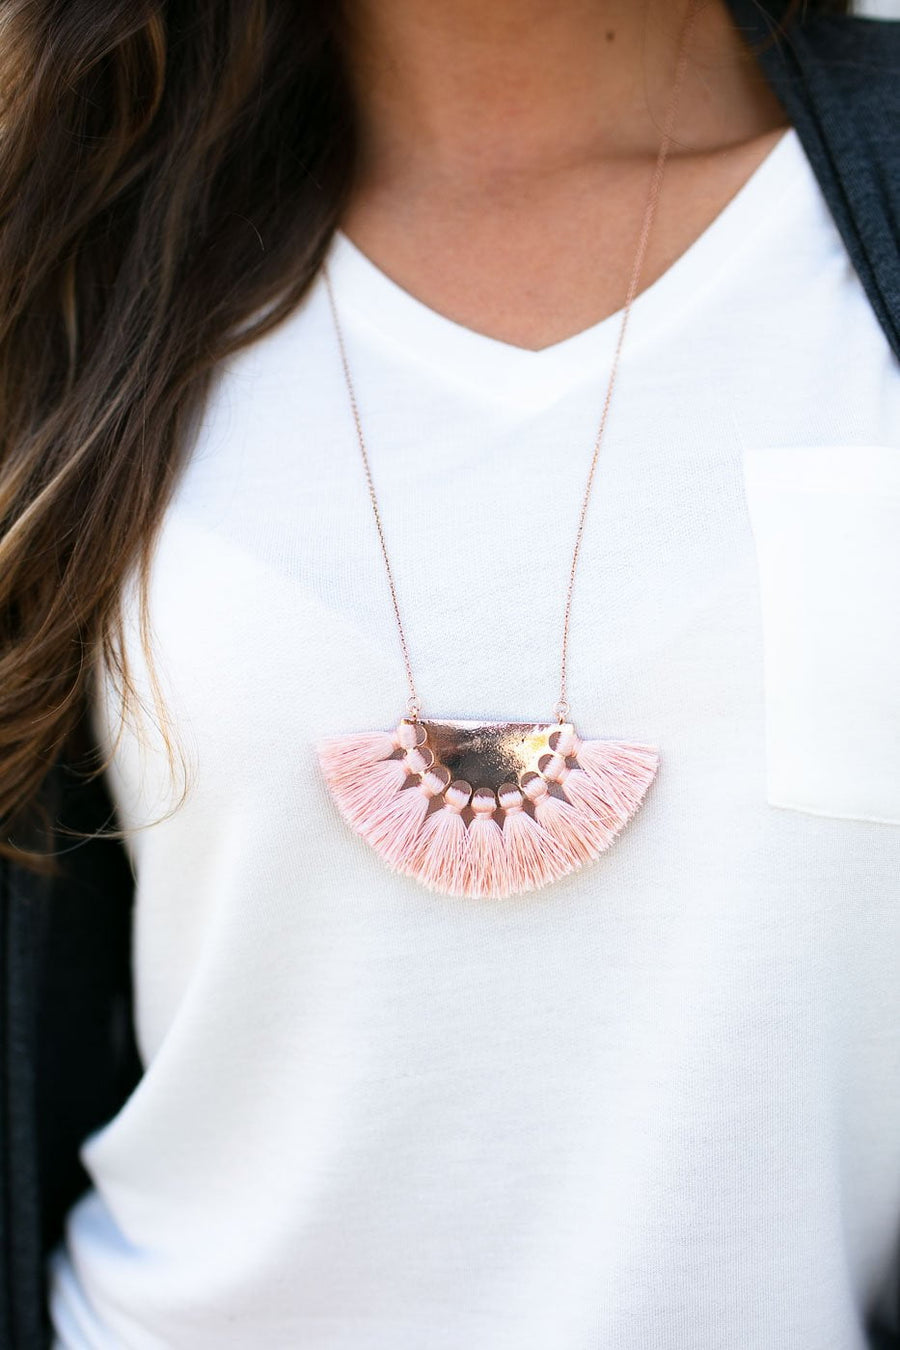 Accessories I'm Your Biggest Fan Blush Tassel Necklace - Lotus Boutique